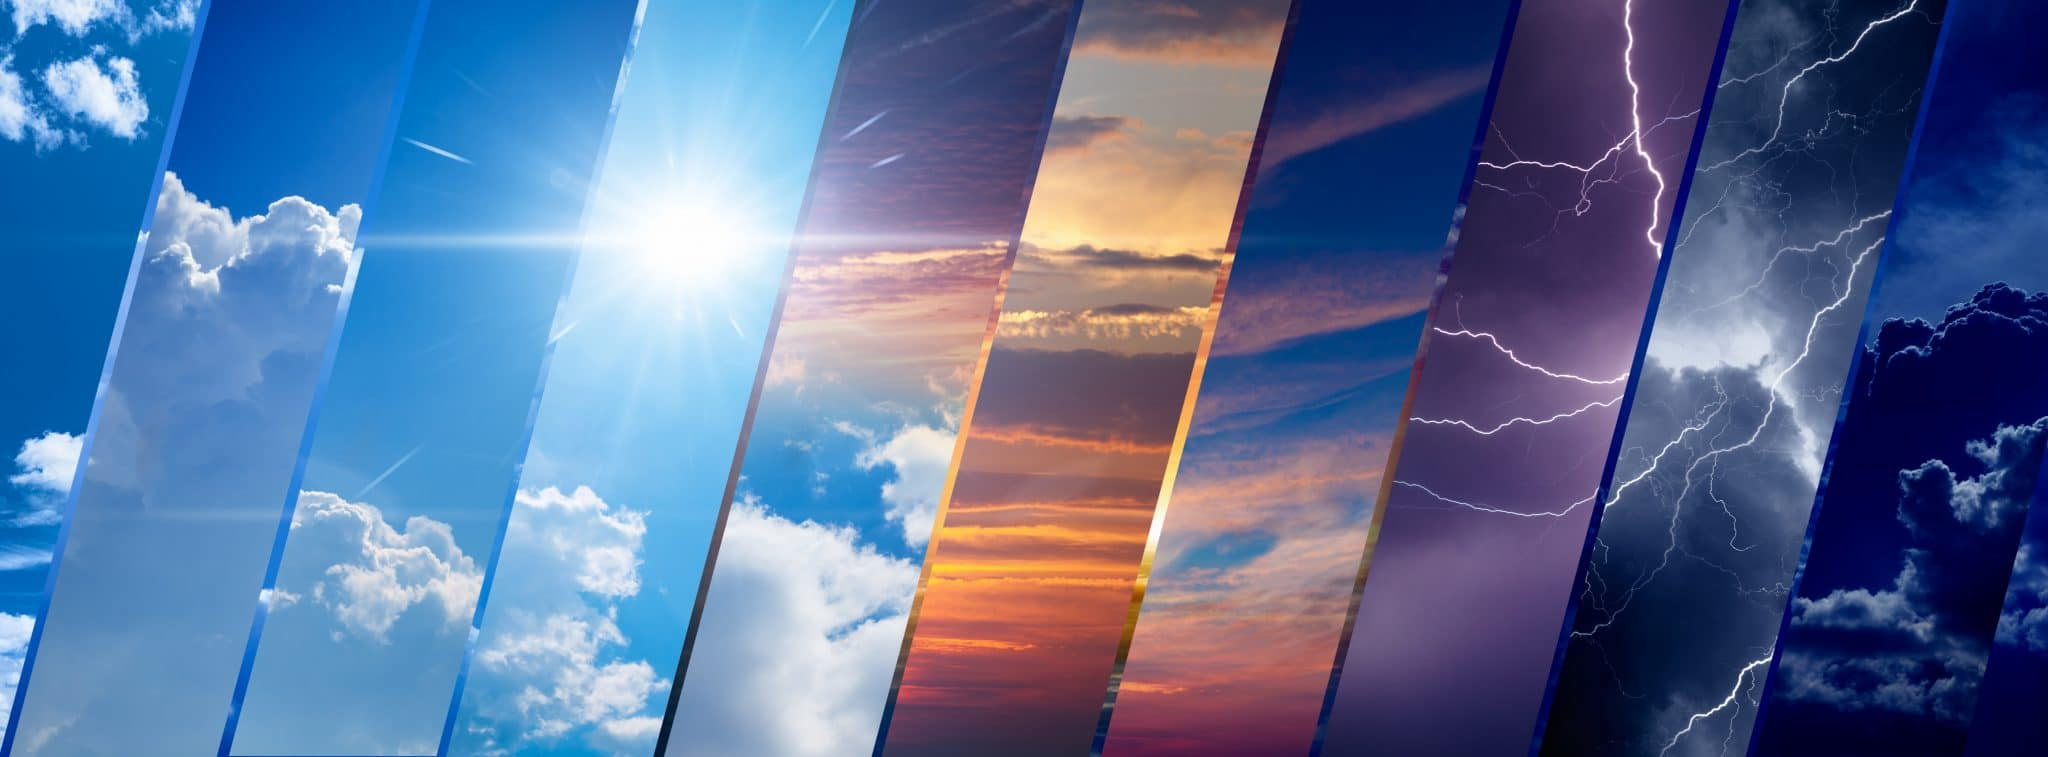 collage of sky image with variety weather conditions - bright sun and blue sky, dark stormy sky with lightnings, sunset and night